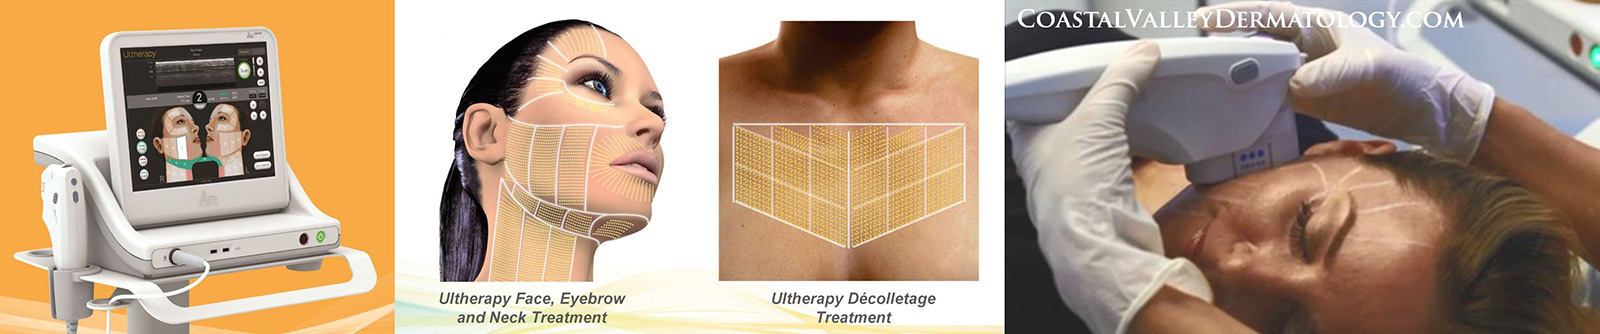 coastal-valley-dermatology-carmel-ultherapy-procedure-non-surgical-photo